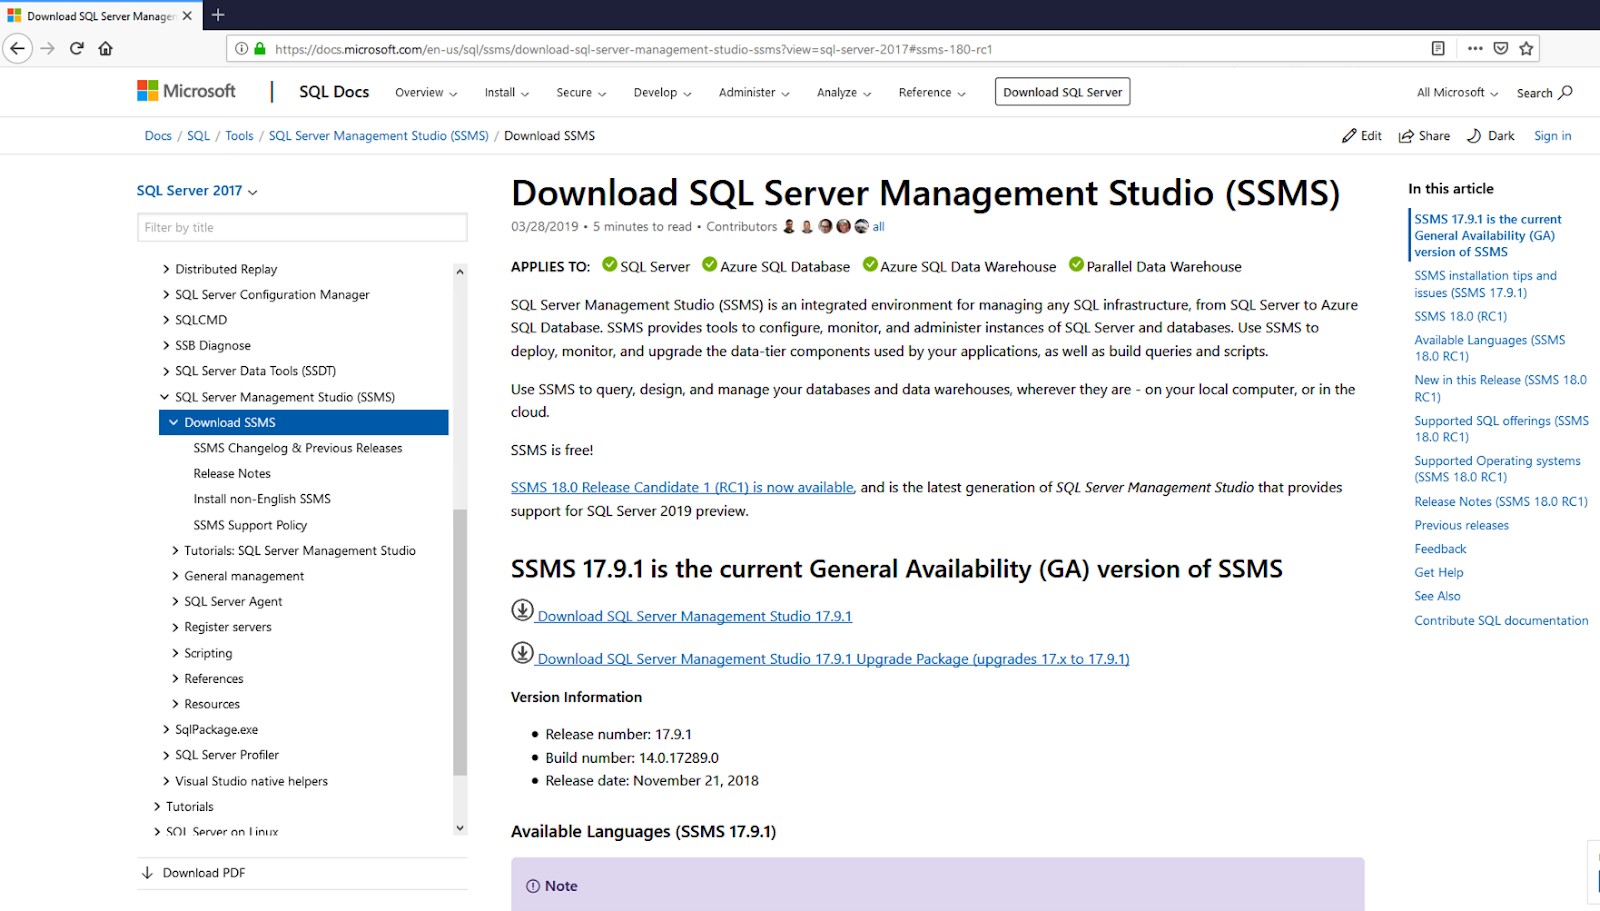 SQL Server Management Studio 2017 download page.